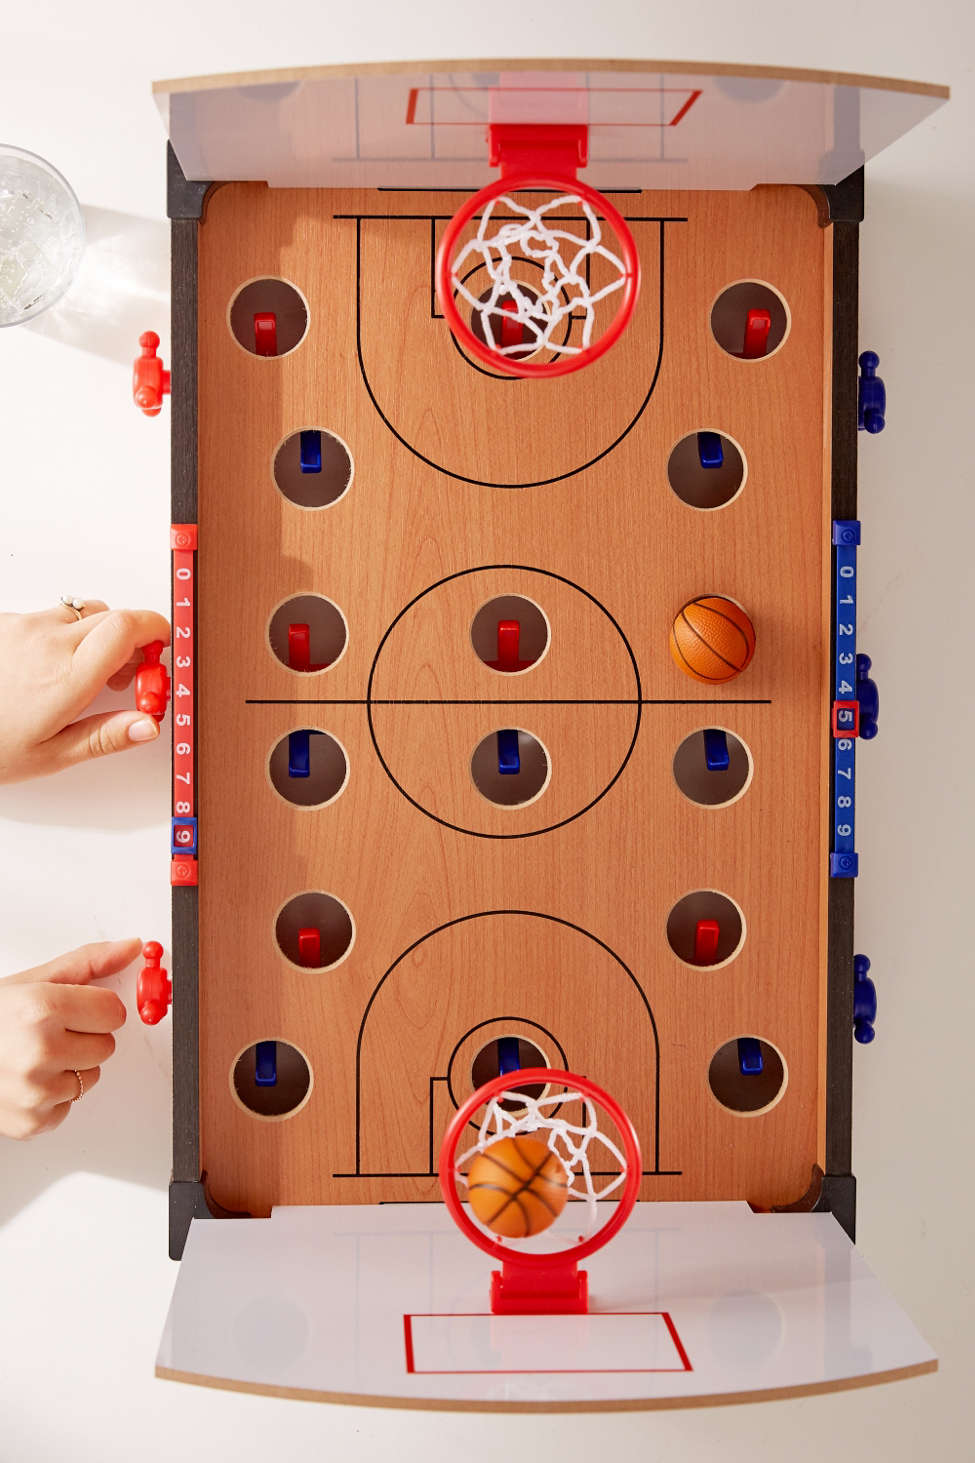 Fun Tabletop Basketball Game